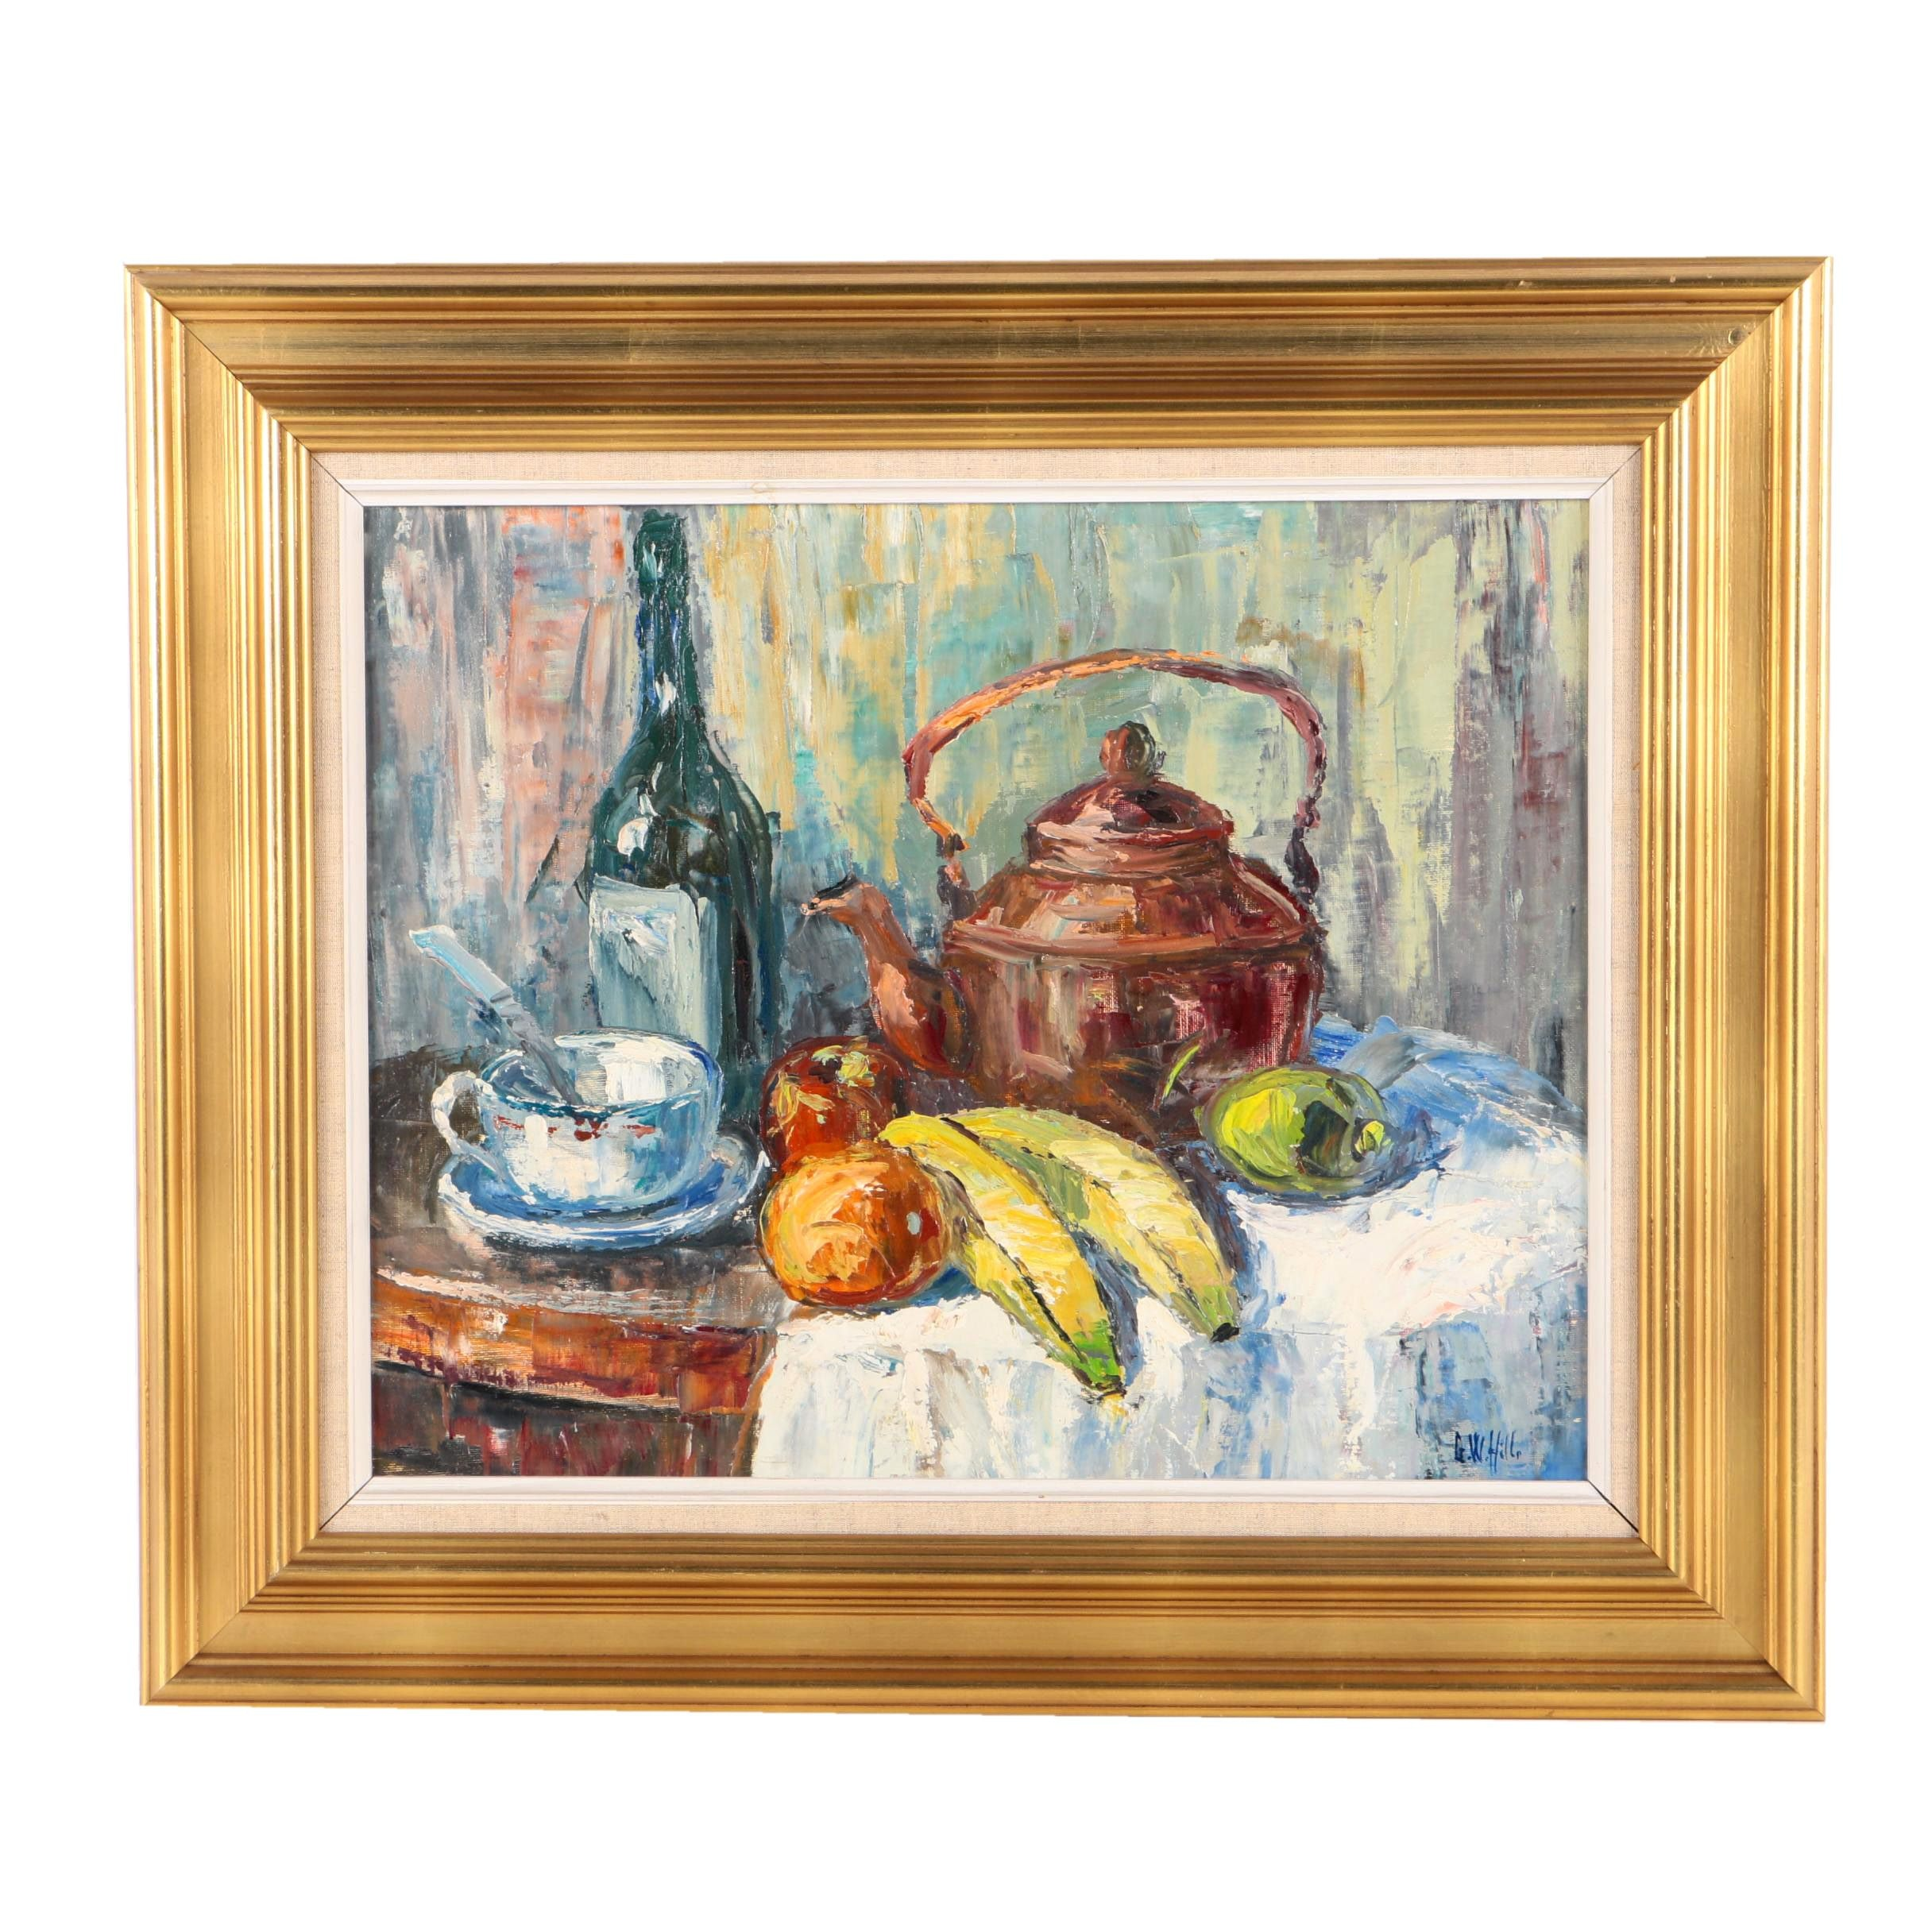 G.W. Hill Oil Painting of a Still Life with Bananas